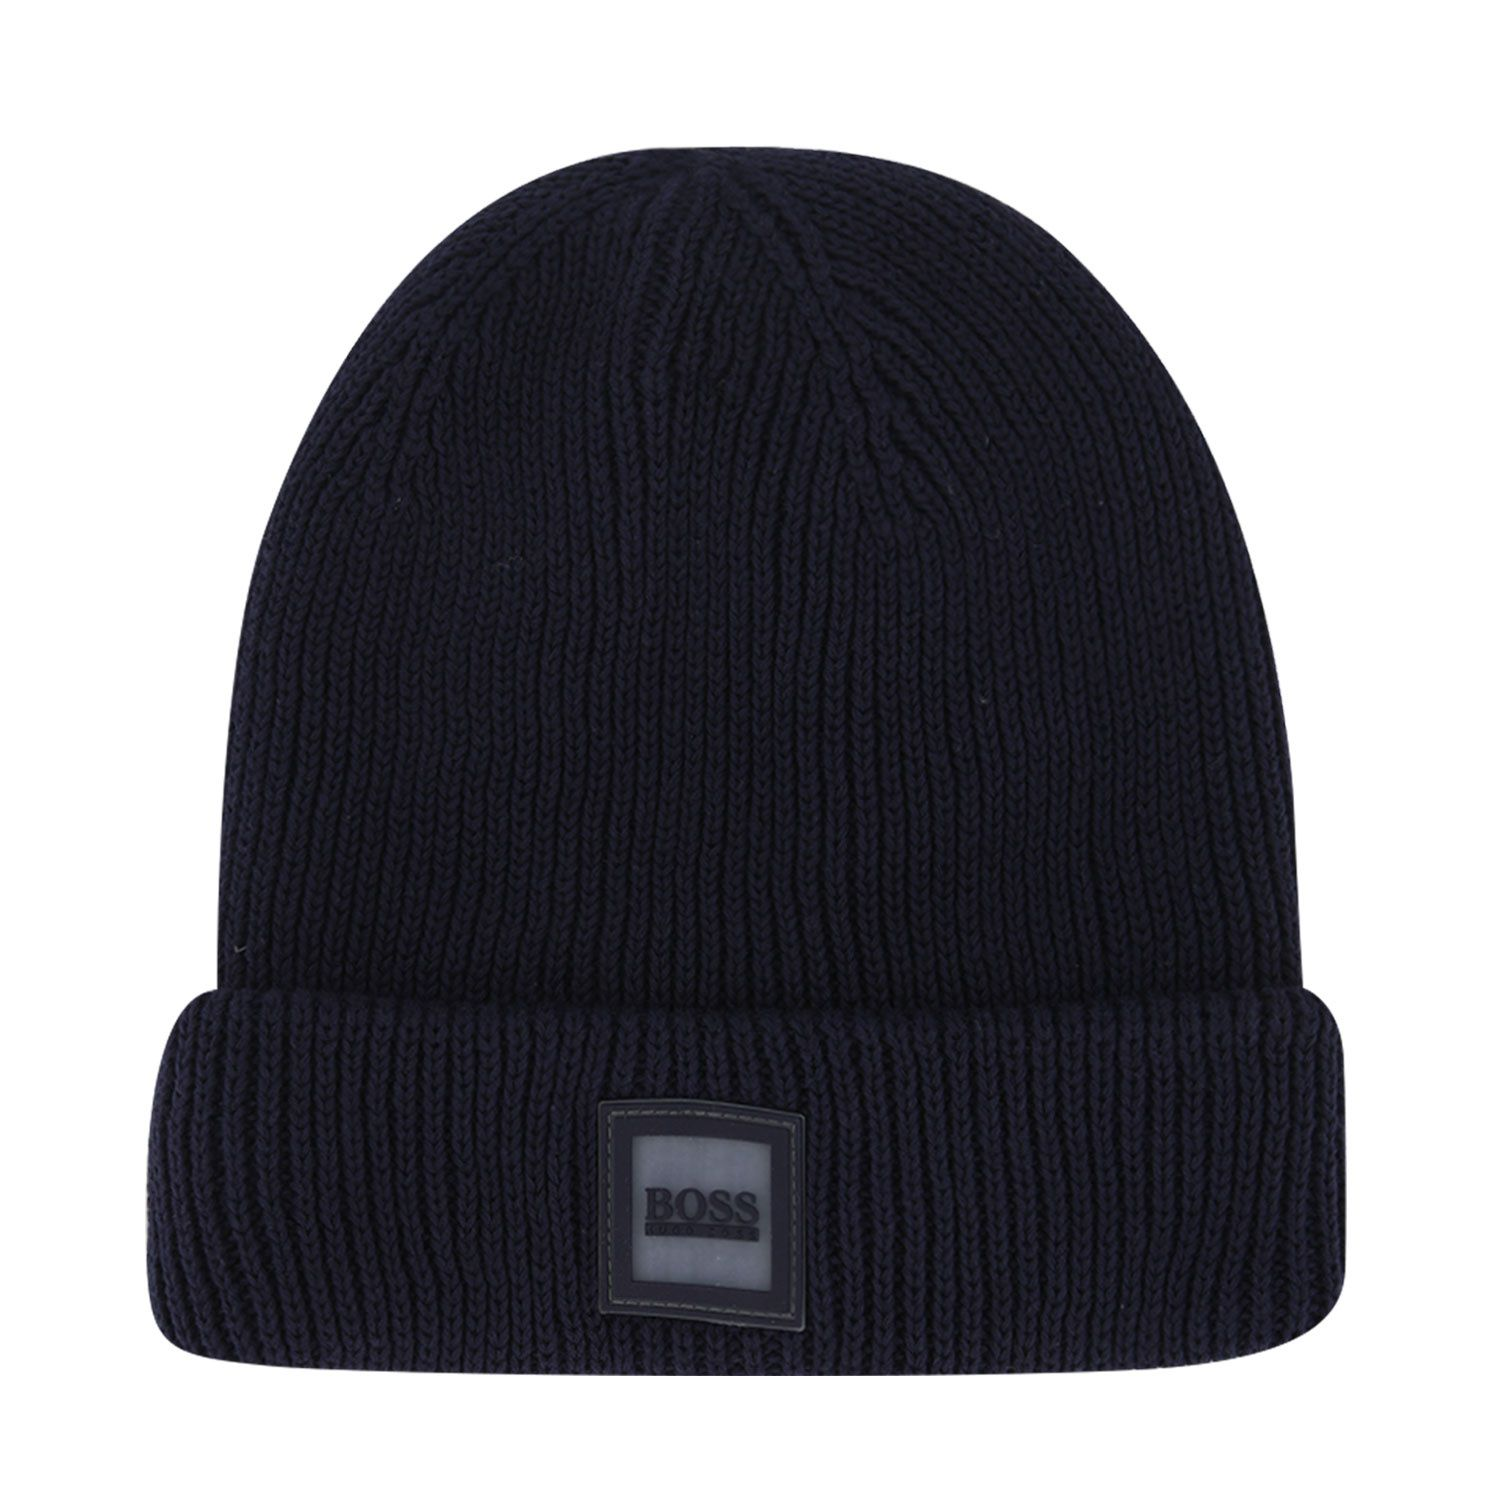 Picture of Boss J21242 kids hat navy